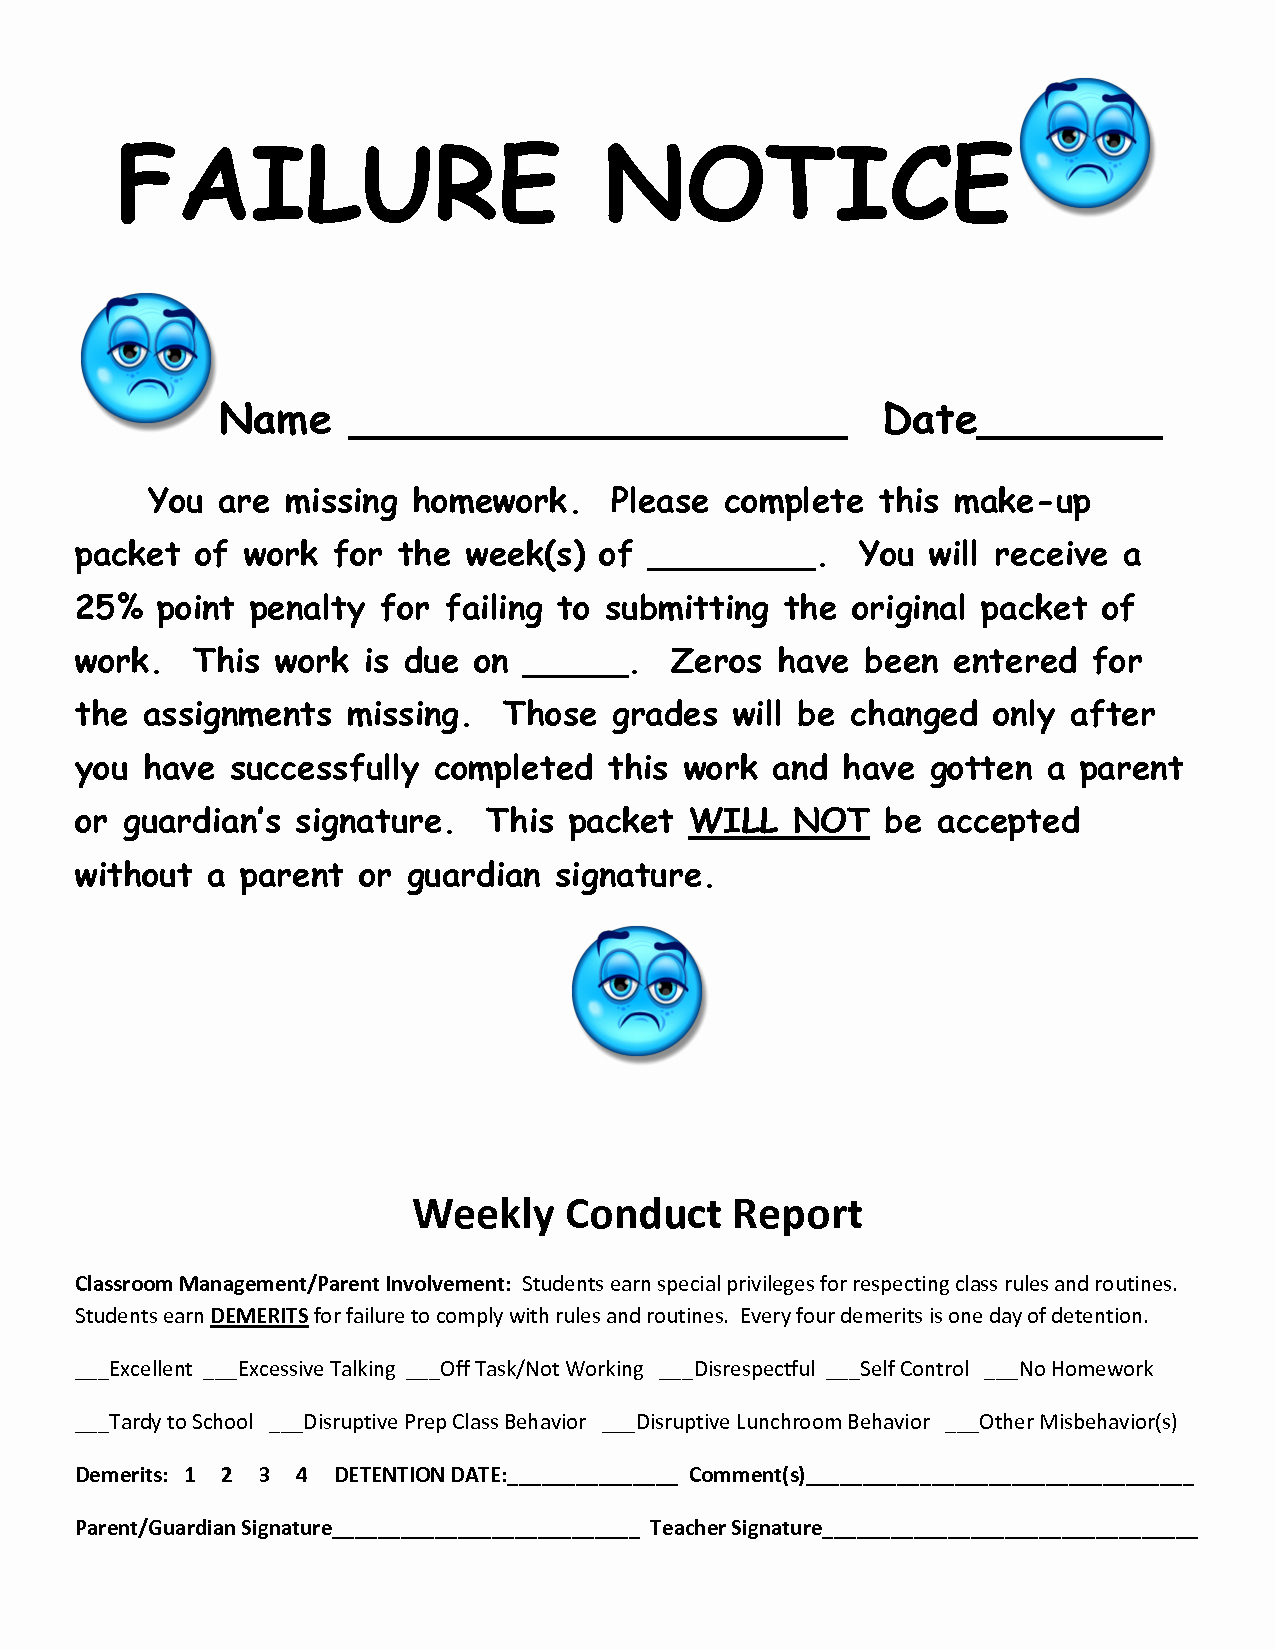 Letters to Parents Template New Failure Letter to Parents Template Templates Station